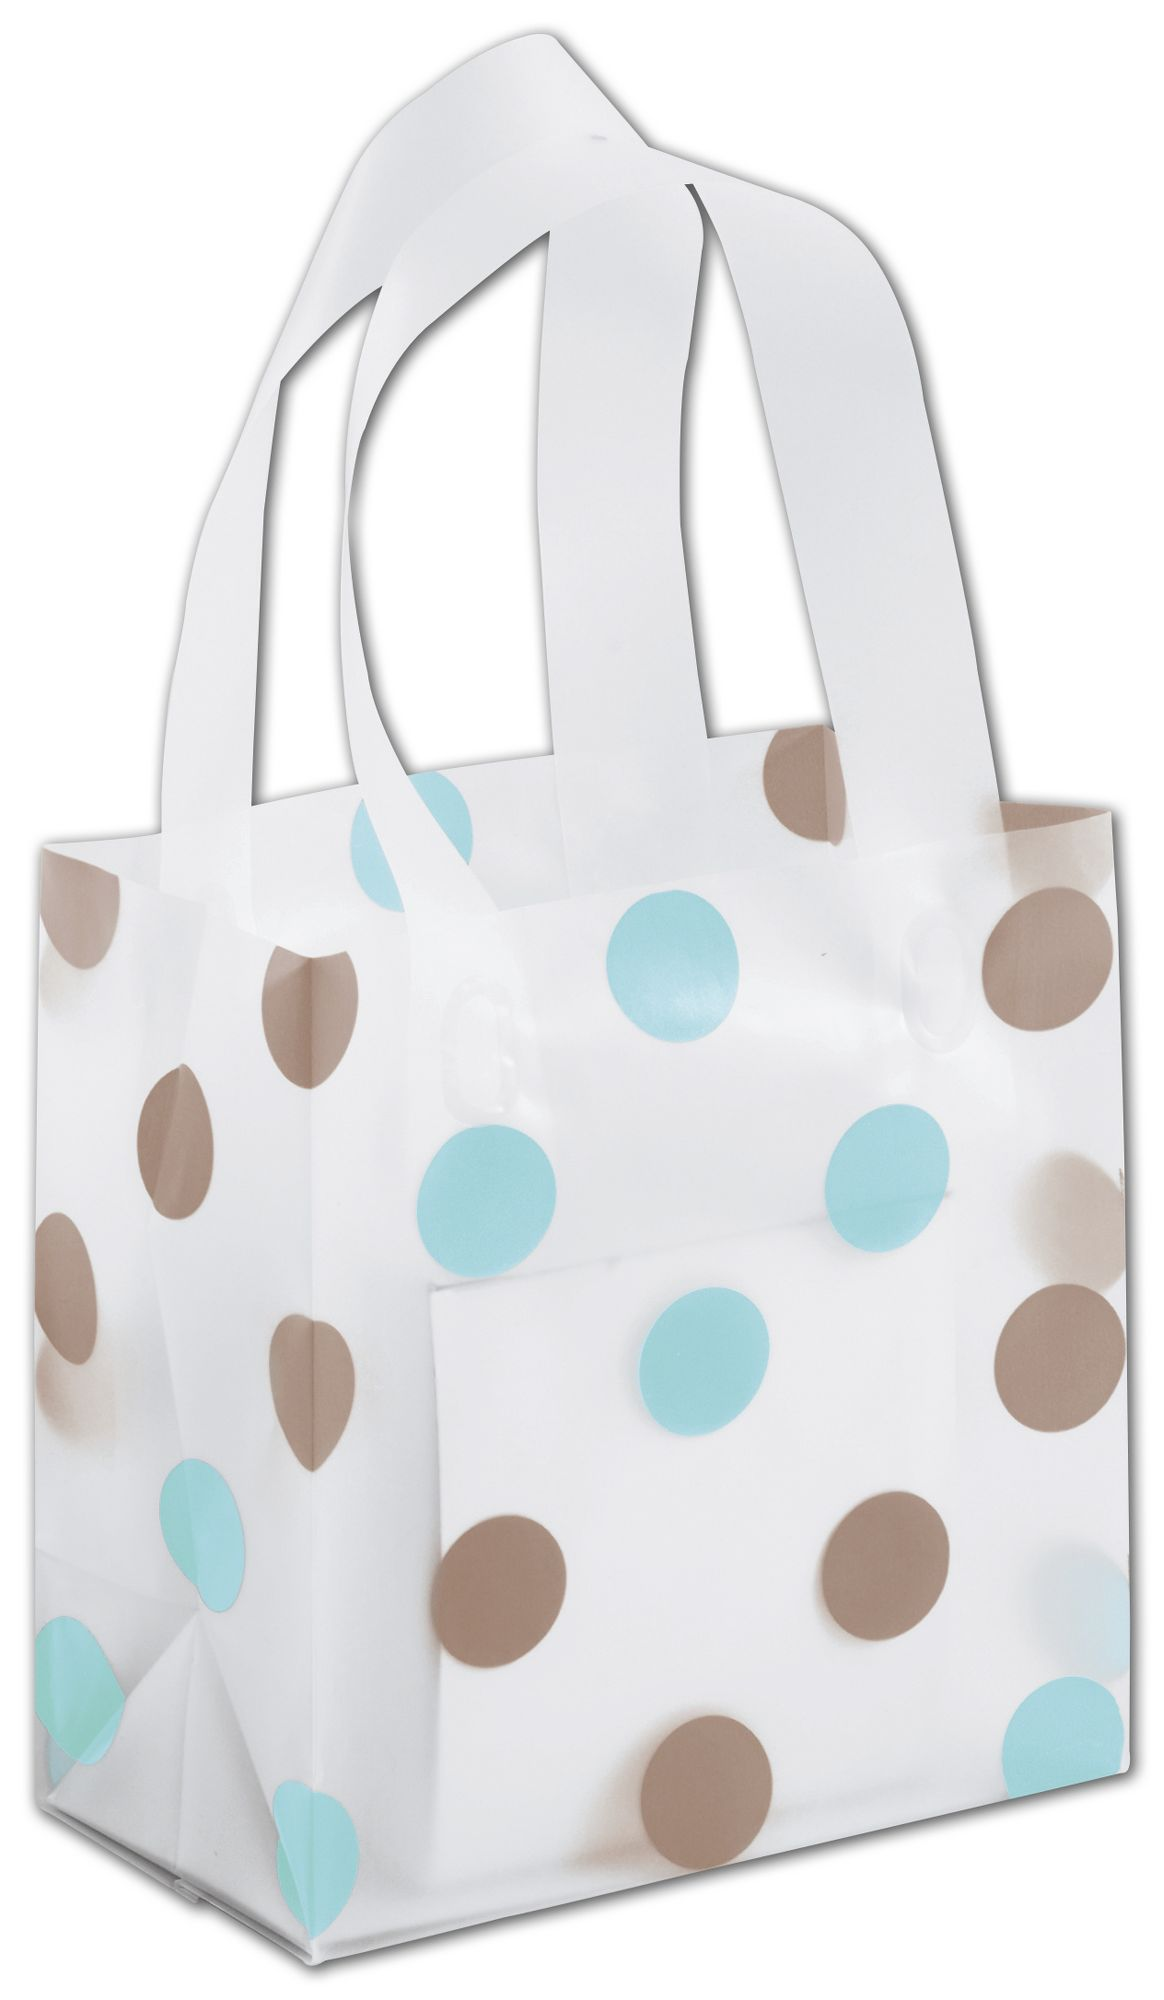 These Small Clear Plastic Shopping Bags are ideal for any retail setting. Strong and attractive.